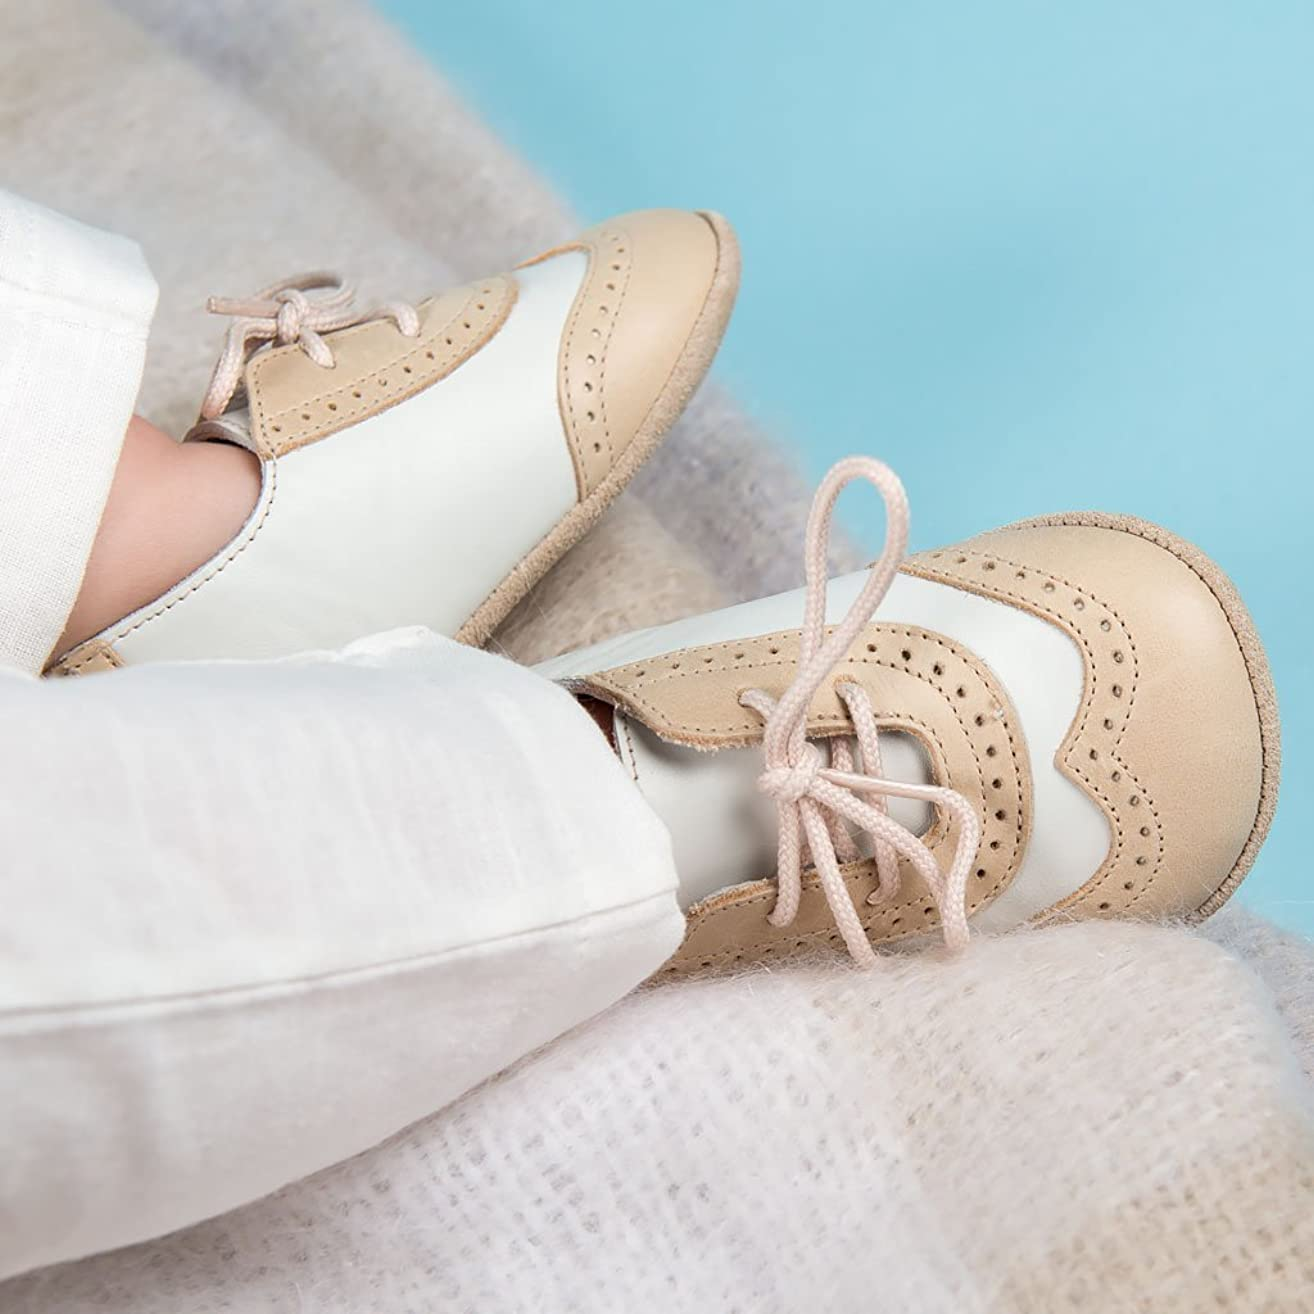 Baby Boy Wingtip Shoes - Beige and Ivory Two Tone baby shoes